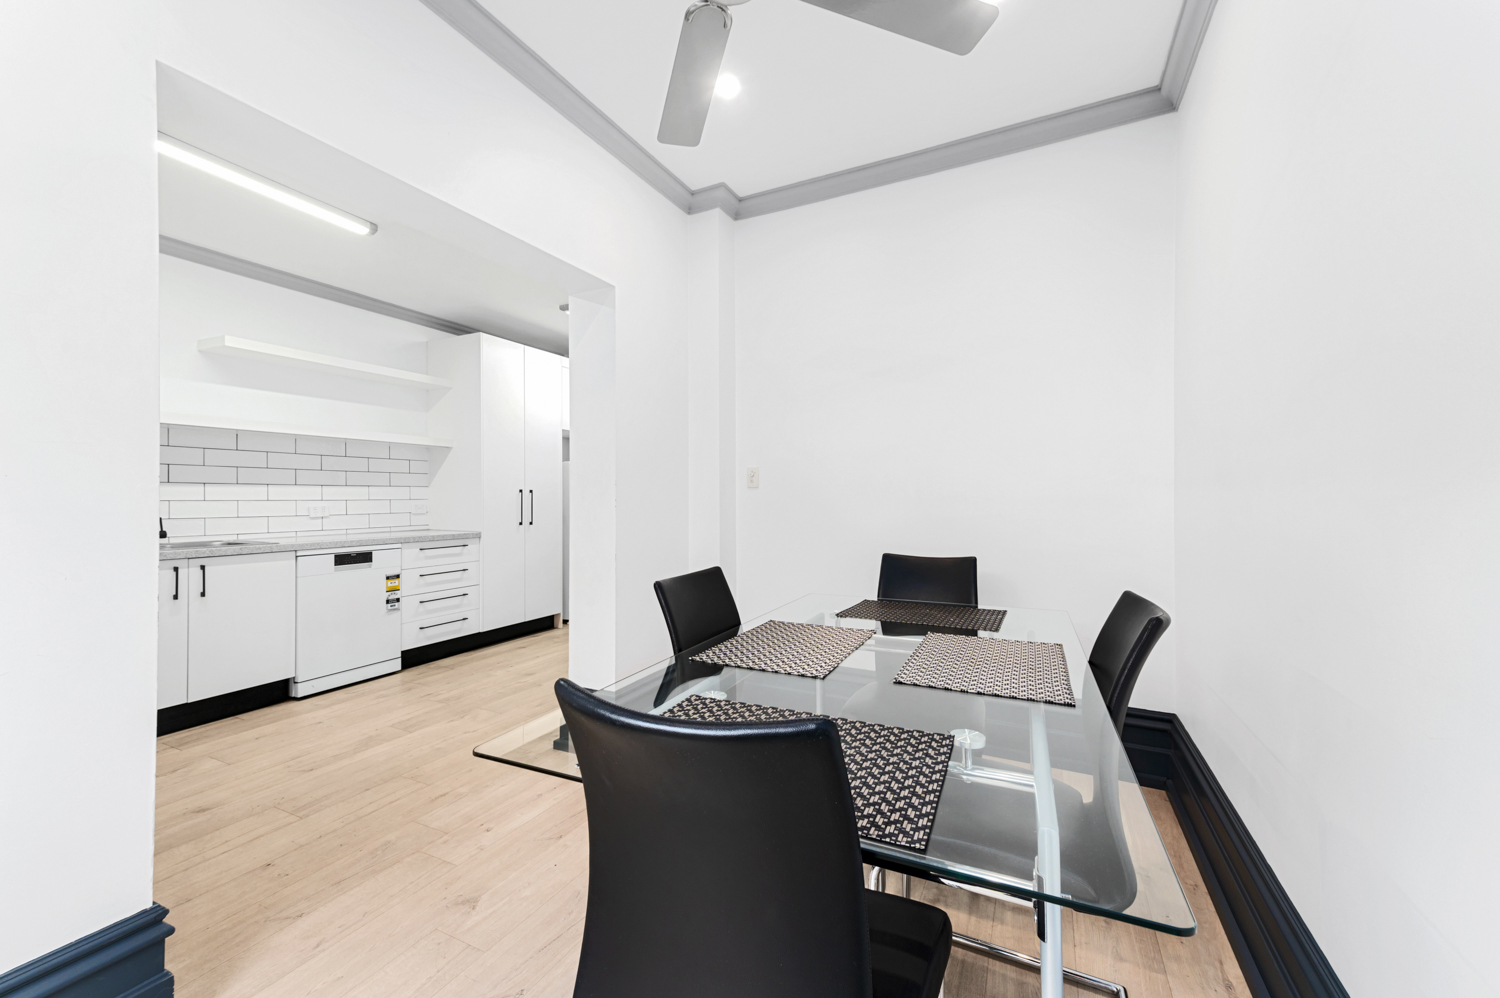 143-peel-street-north-melbourne-student-accommodation-Melbourne-Living-Area-Unilodgers